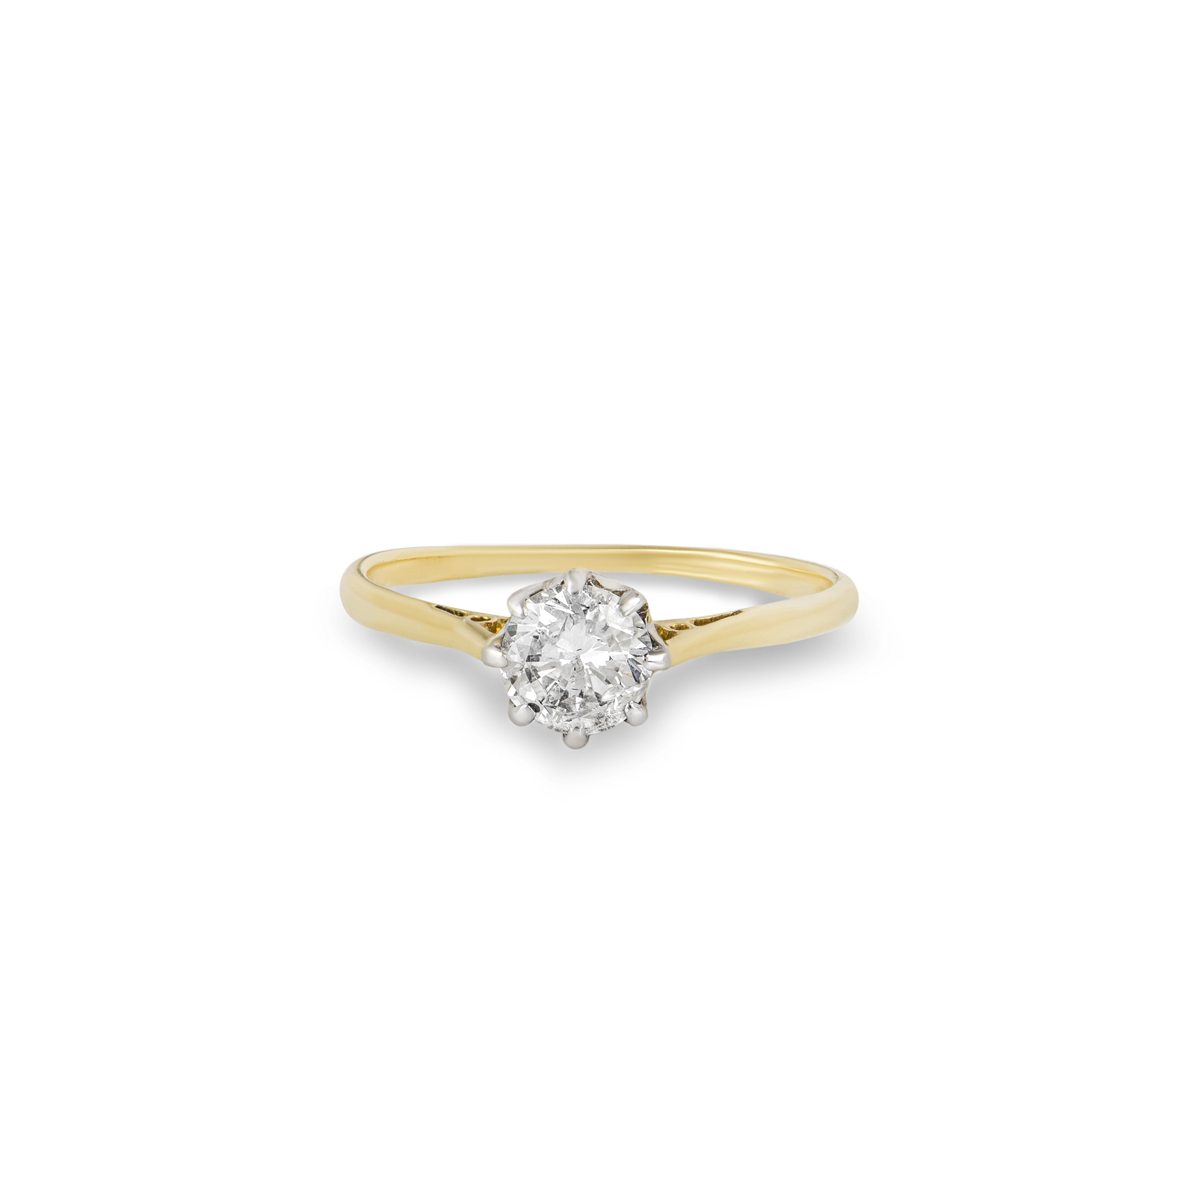 18k Yellow Gold Round Brilliant Cut Diamond Ring 0.51ct G/SI2